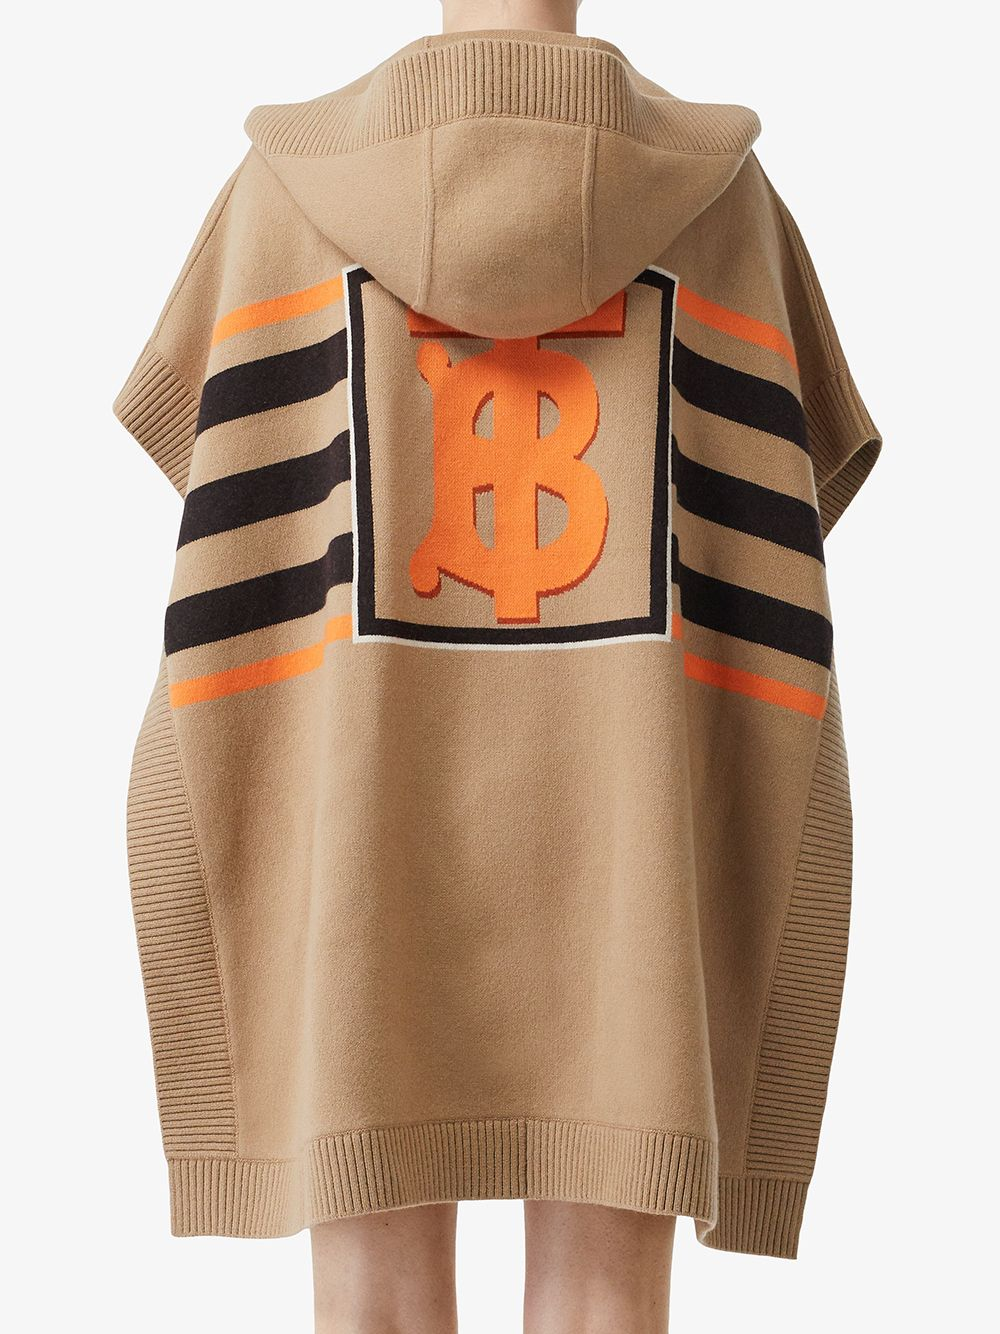 Brown wool and cachemere cape with hood and front pockets BURBERRY |  | 8018233-ST TB MONO STRPA7026